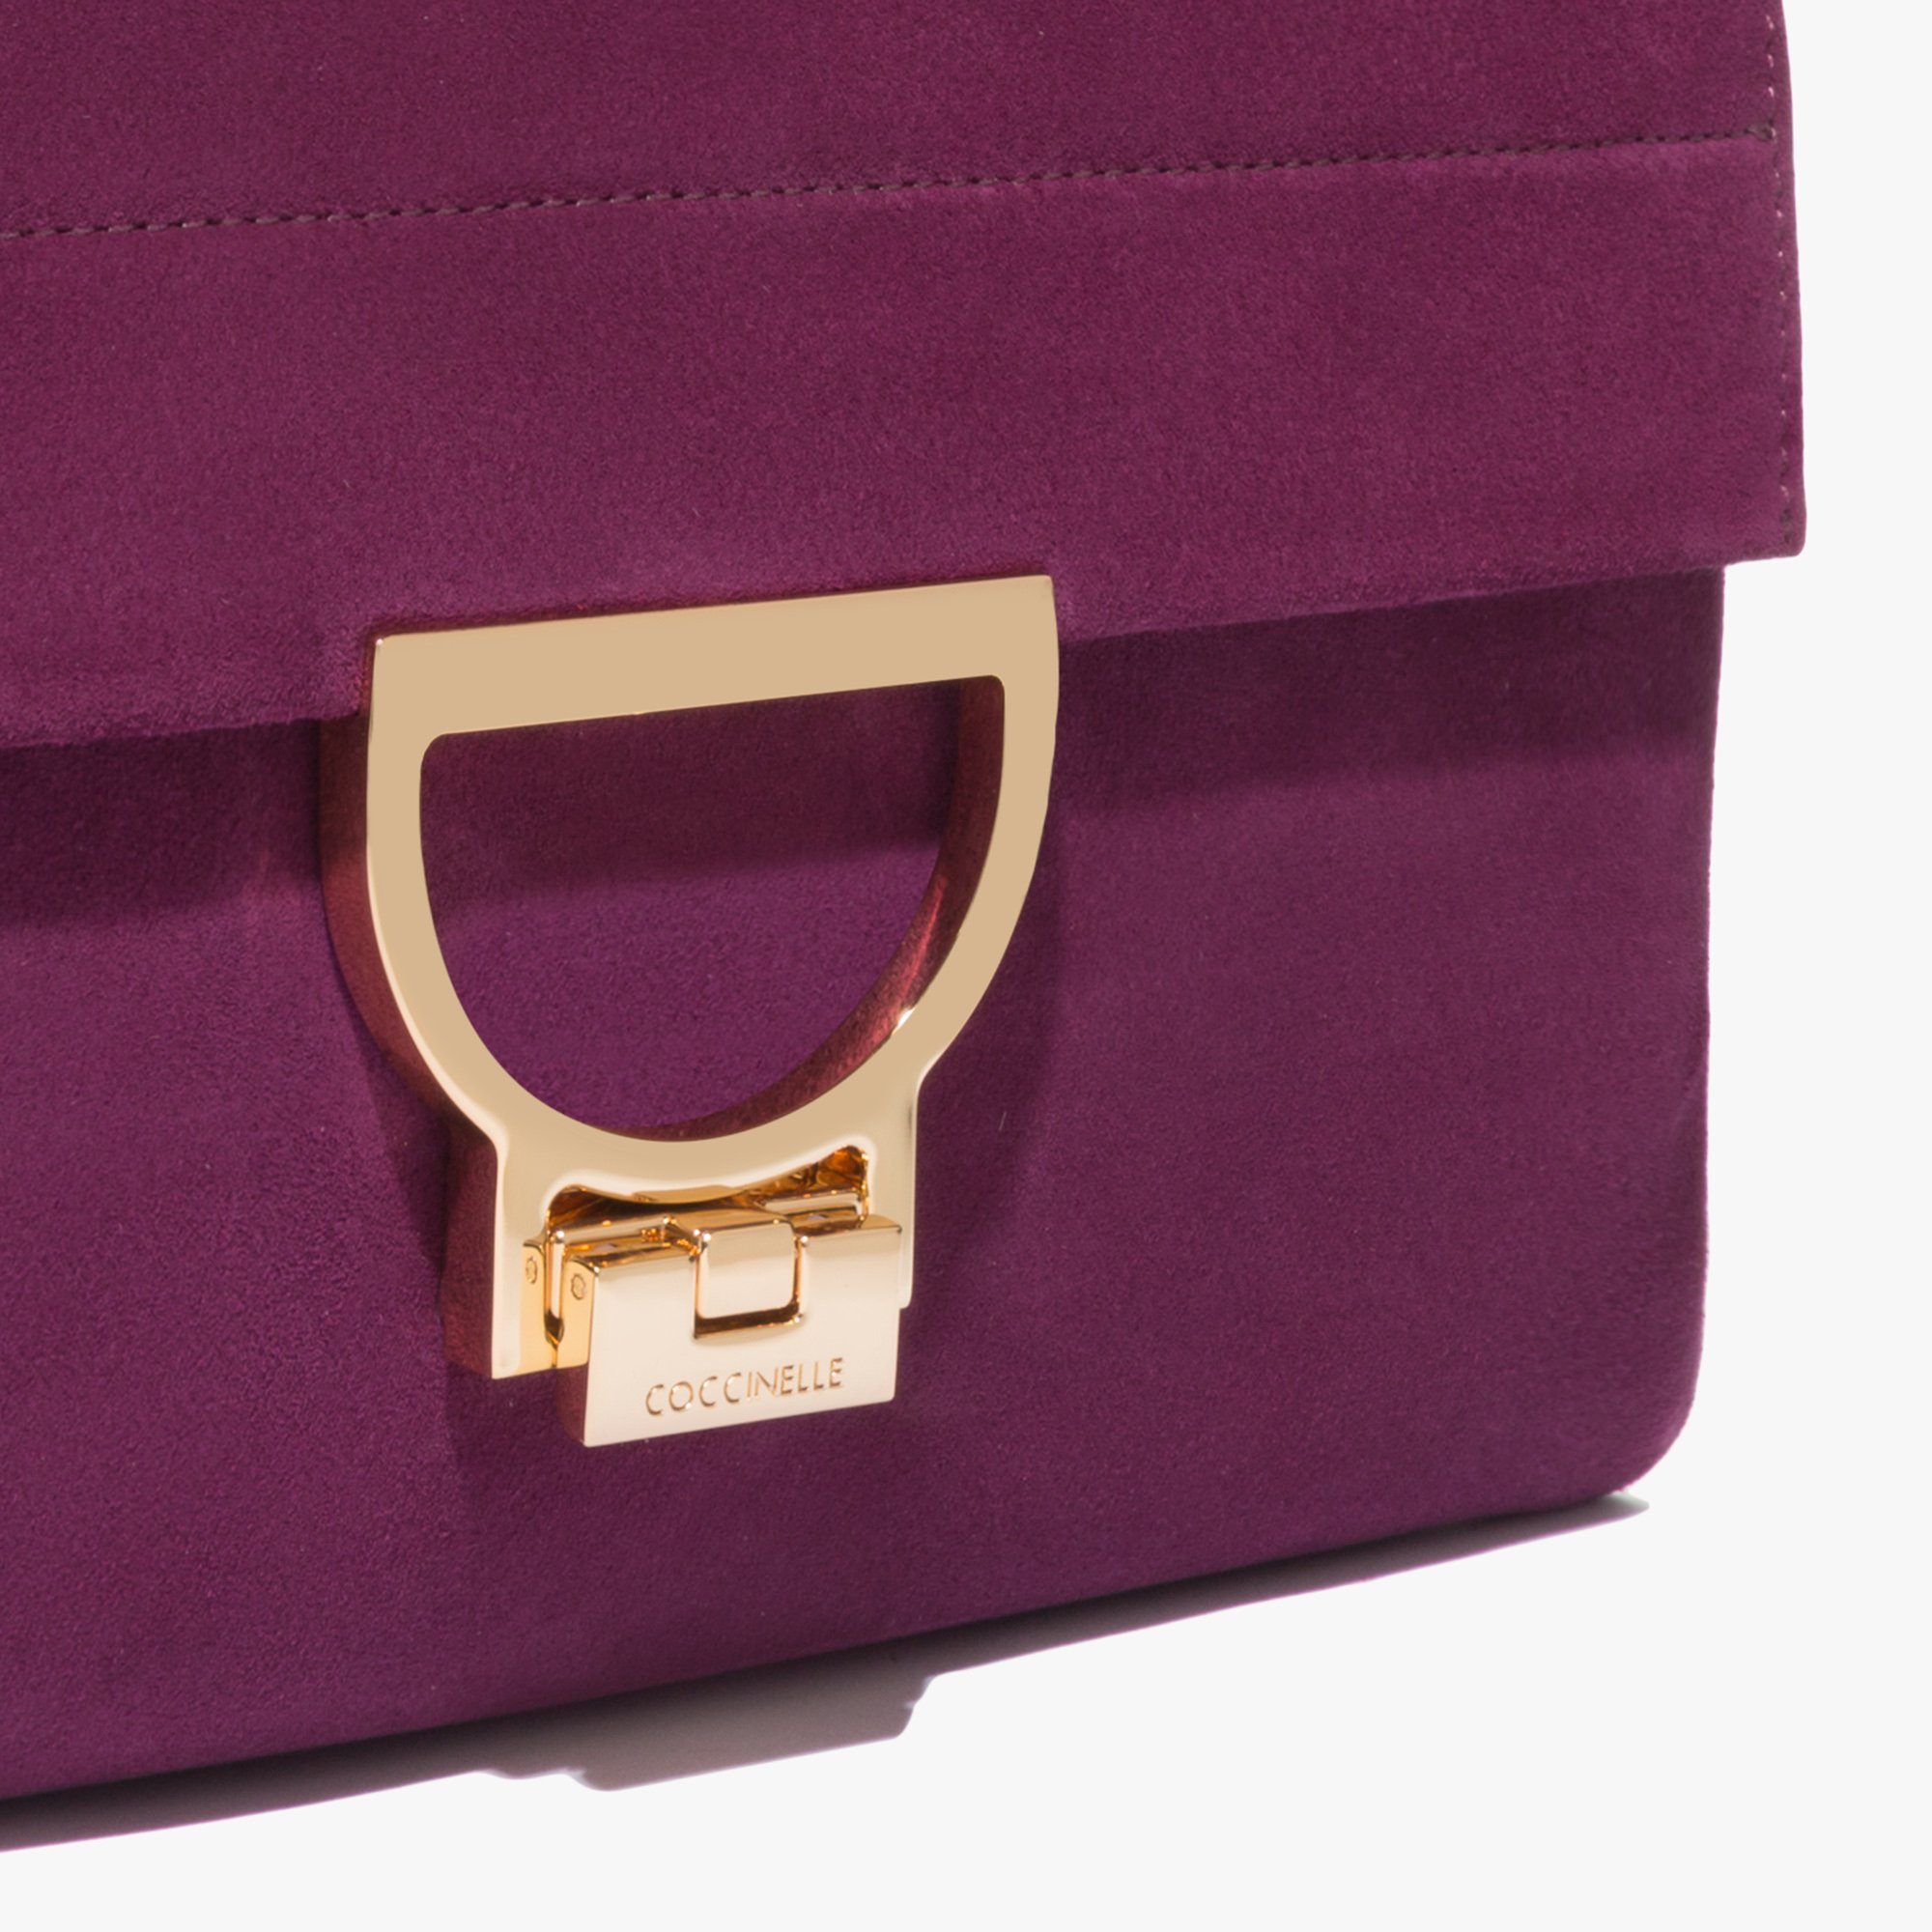 Coccinelle Arlettis suede bag with a single strap